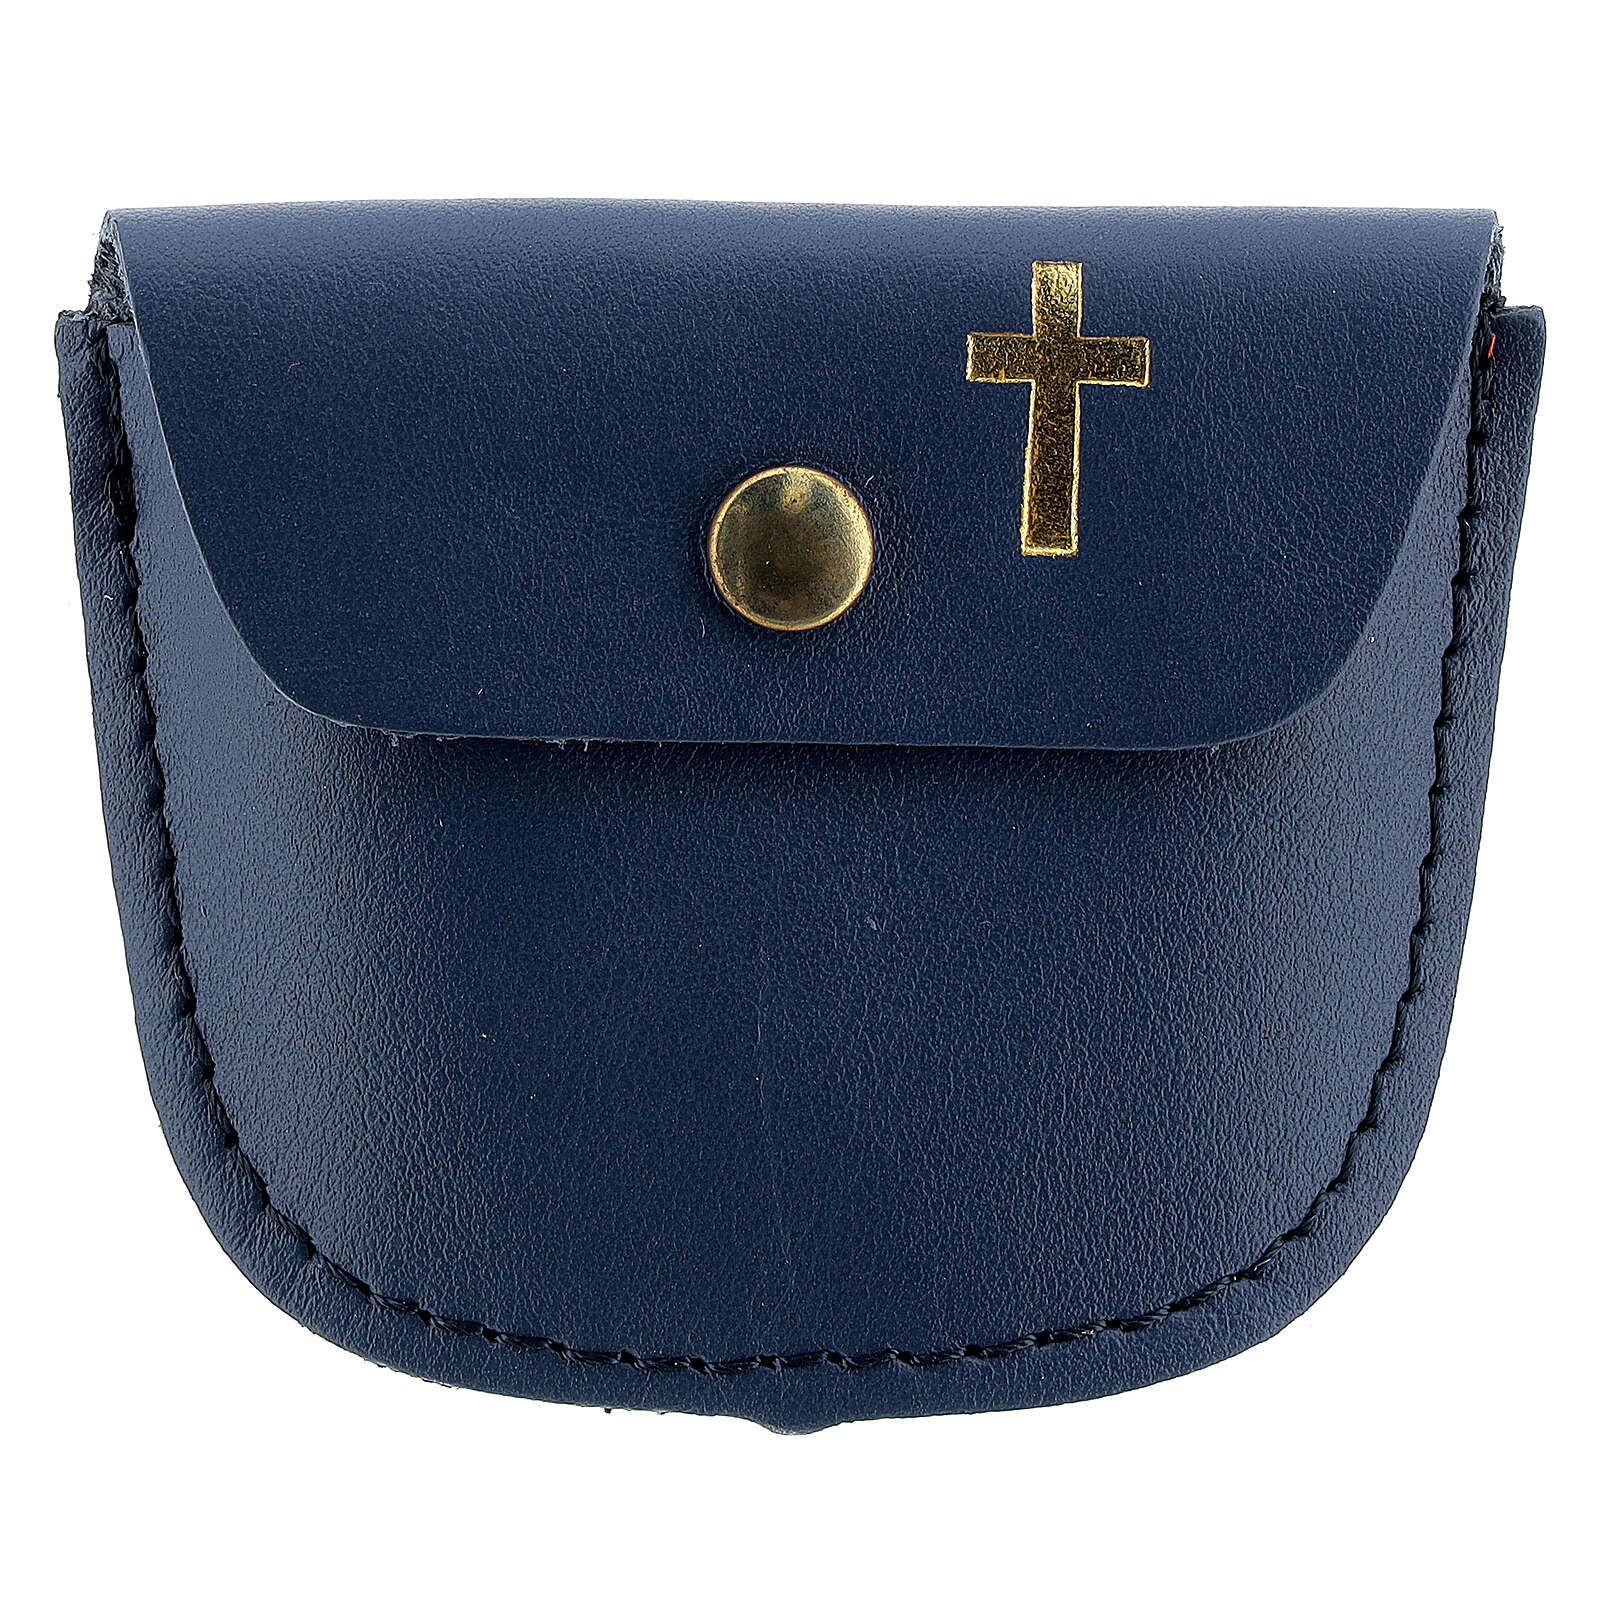 Rosary case dark blue leather with golden latin cross 2x3 in 4